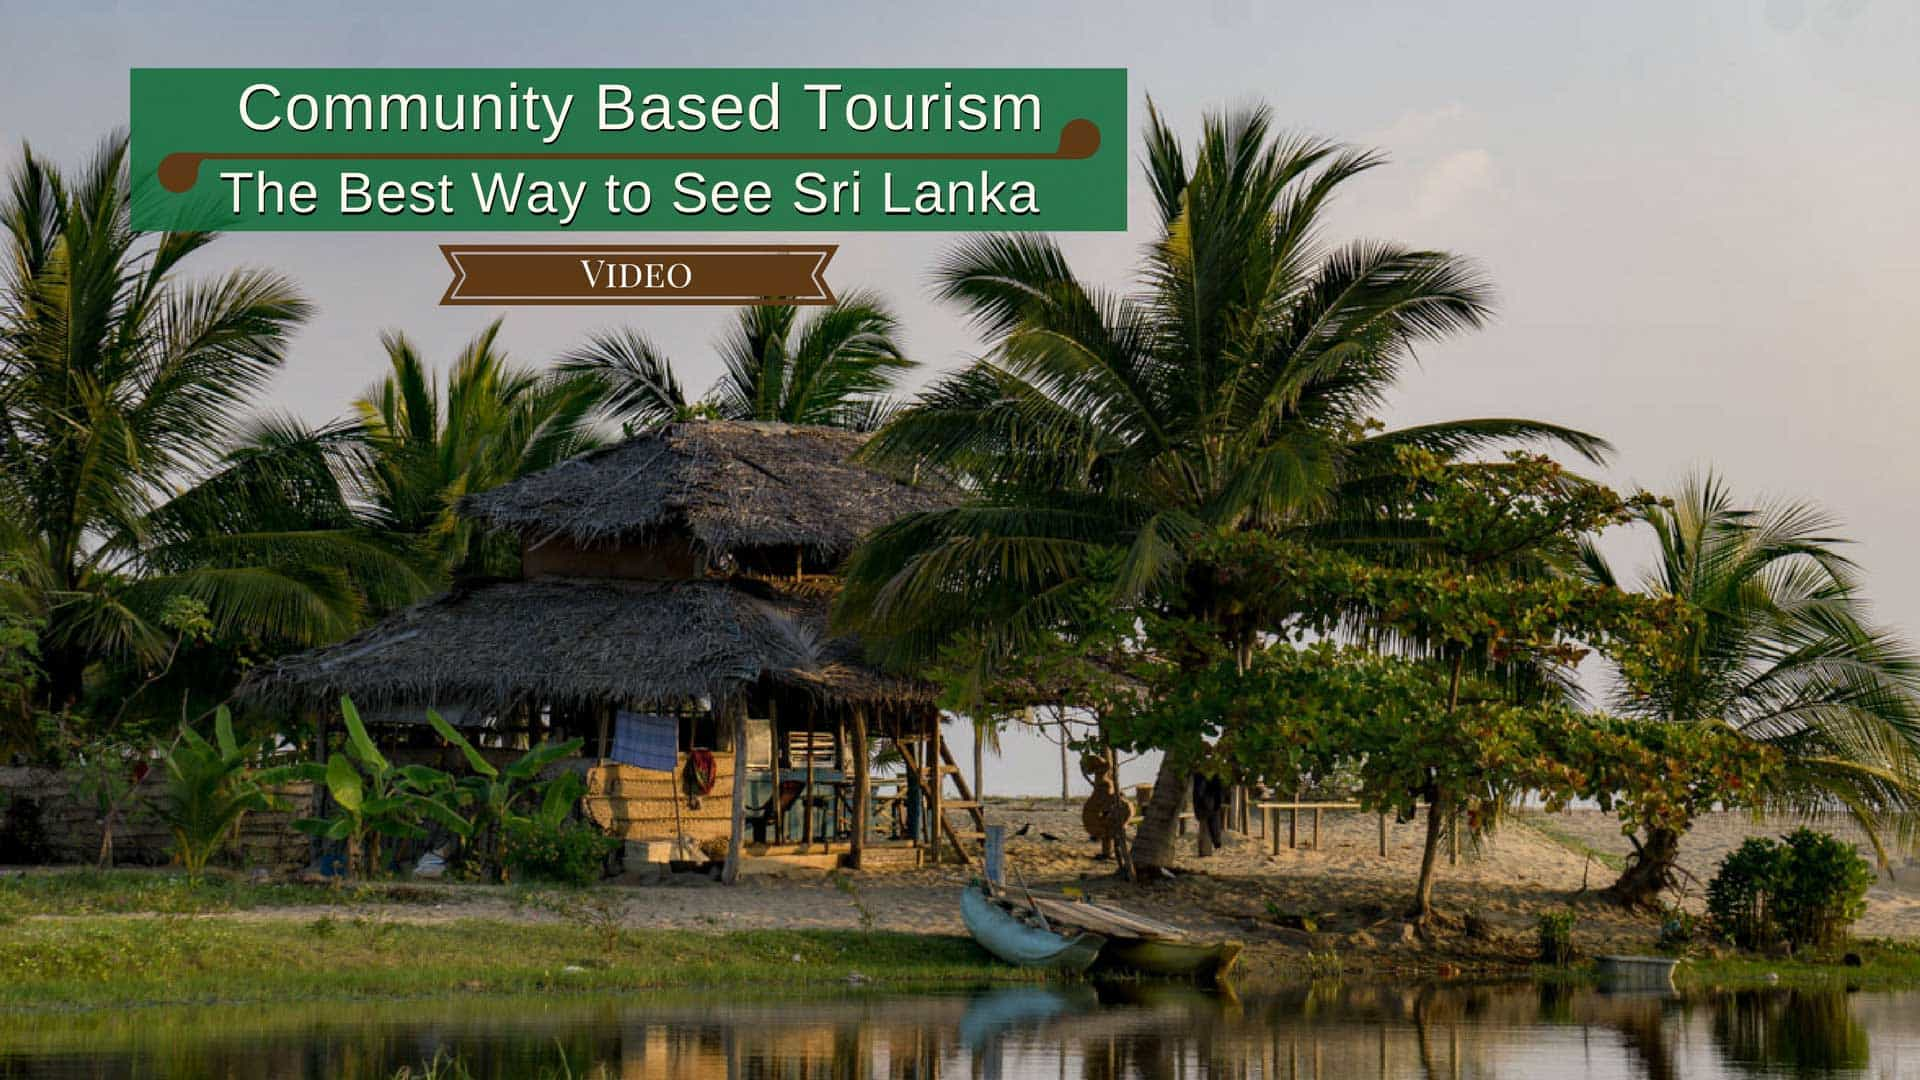 Community Based Tourism: The Best Way to See Sri Lanka - Travel Life Experiences